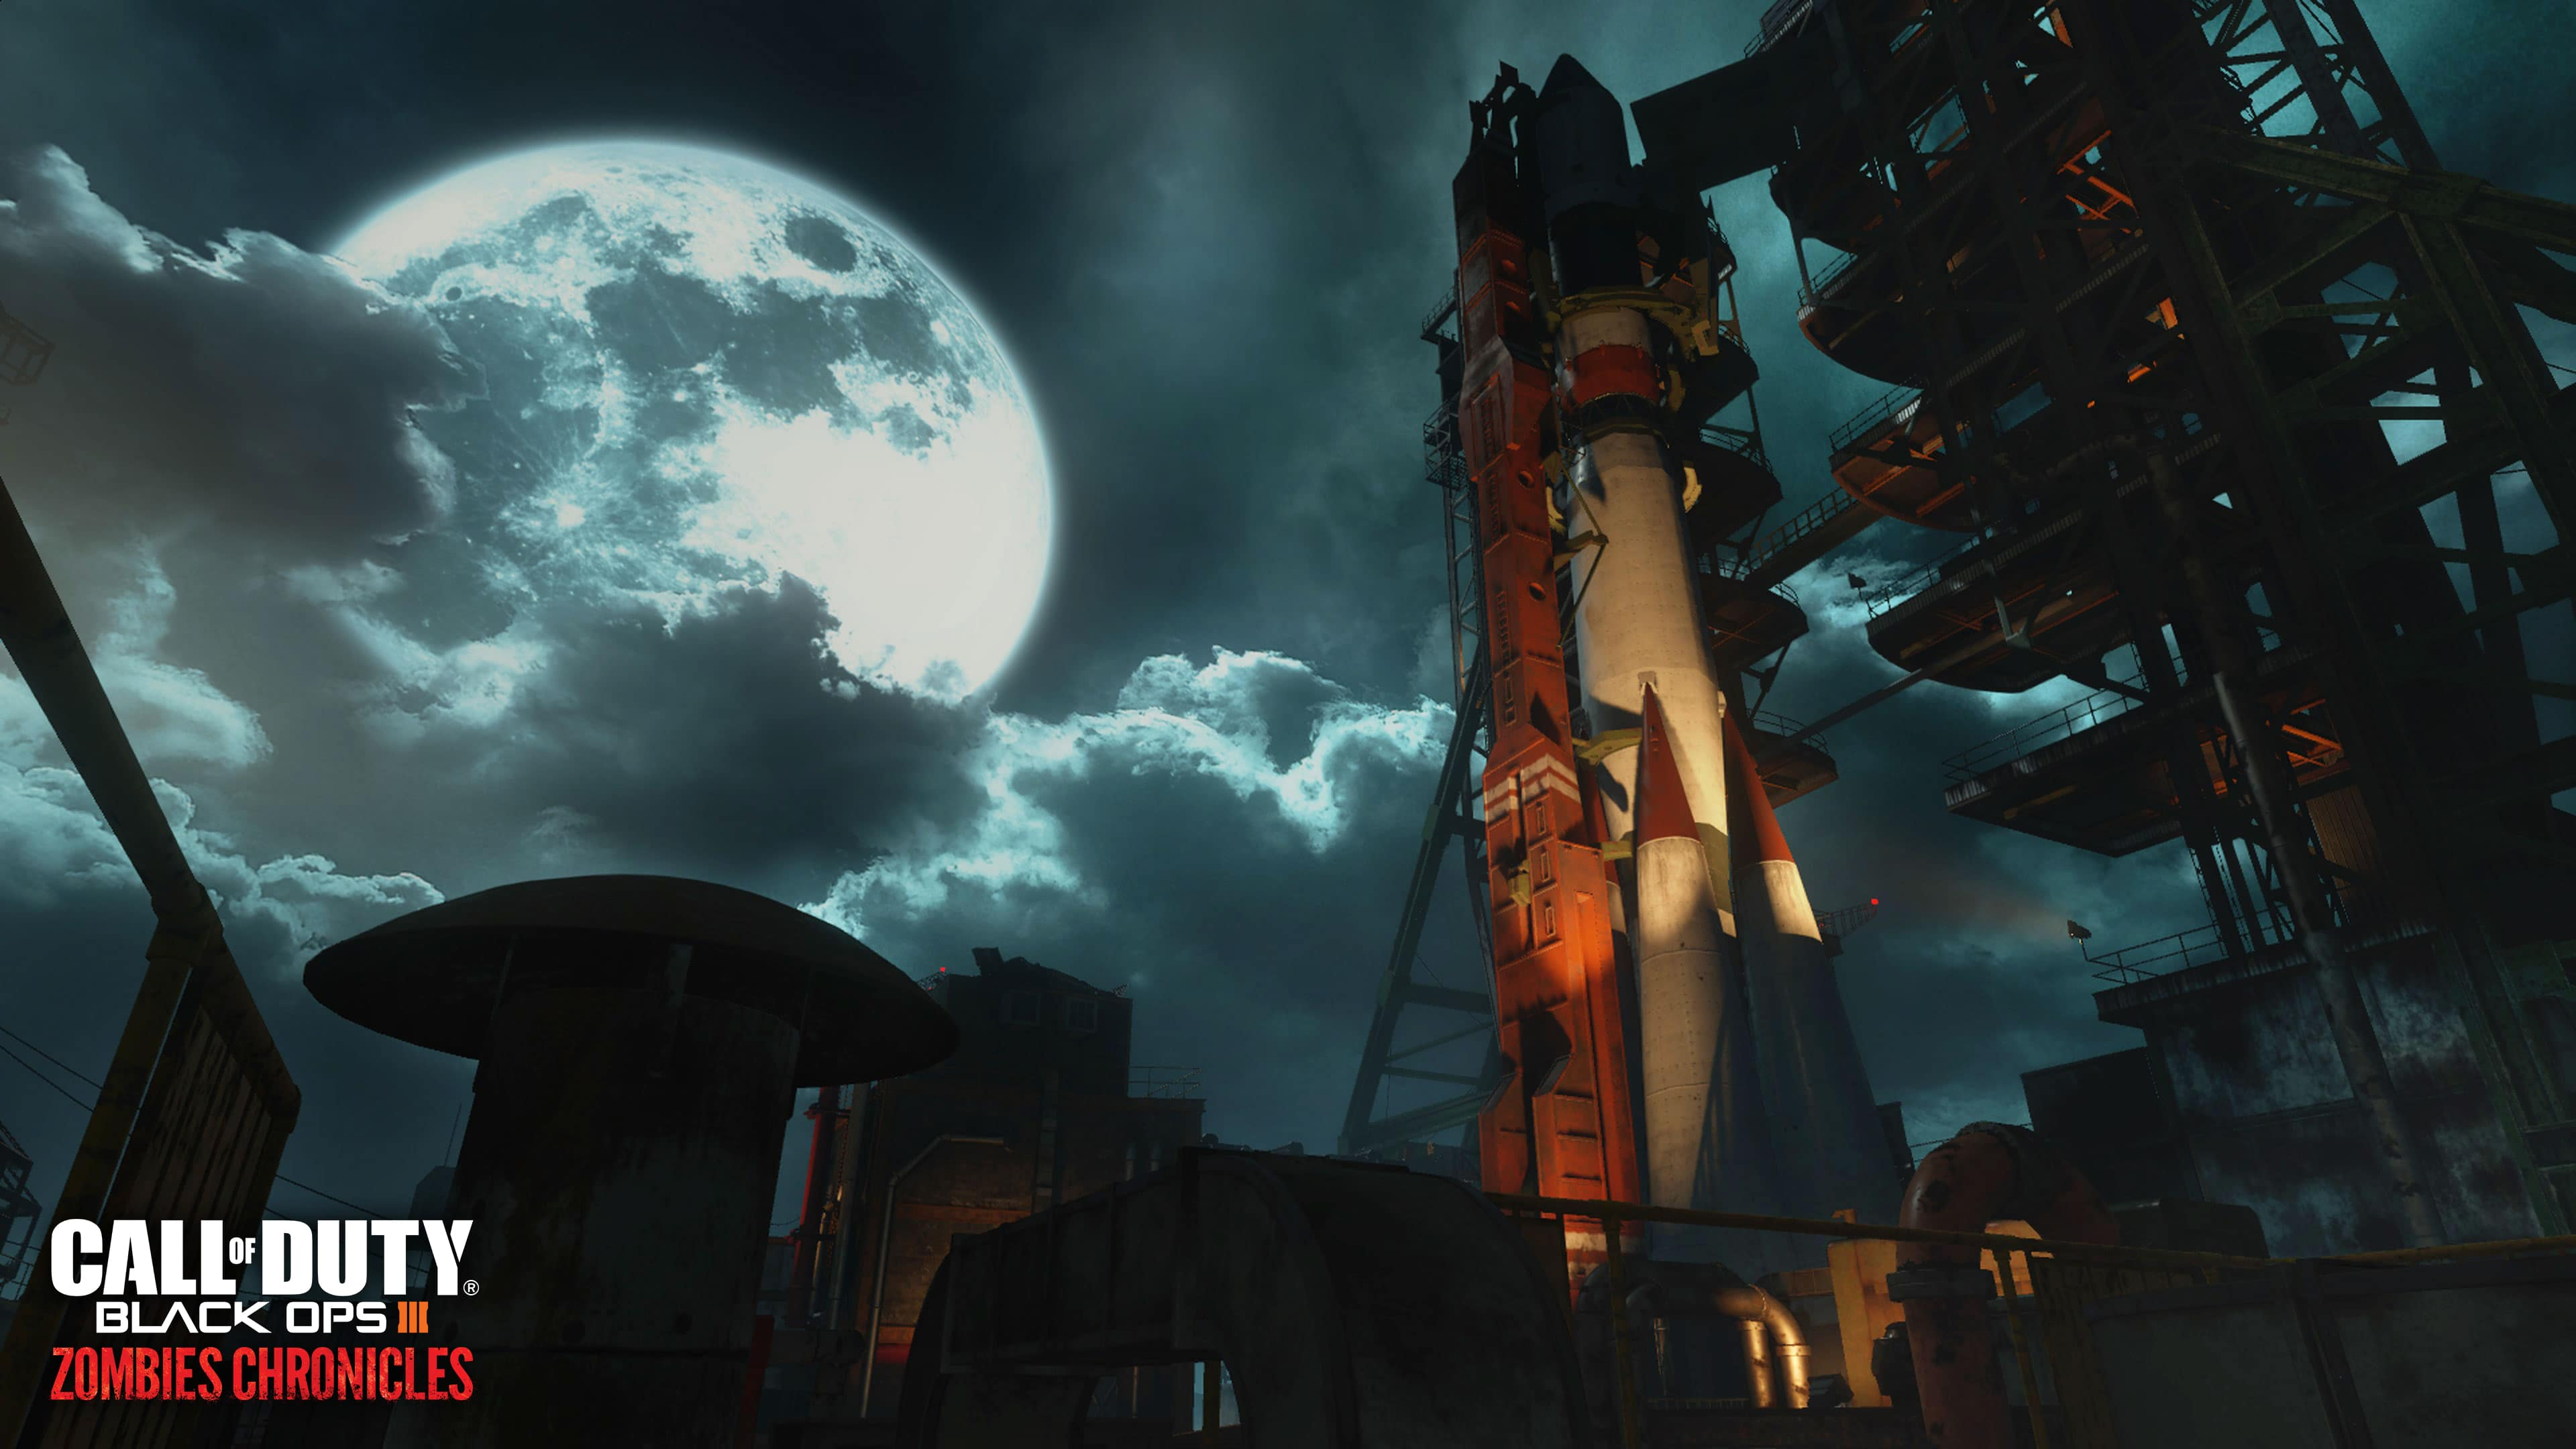 Call of Duty Black Ops III Zombies Chronicles_Ascension map_environment shot